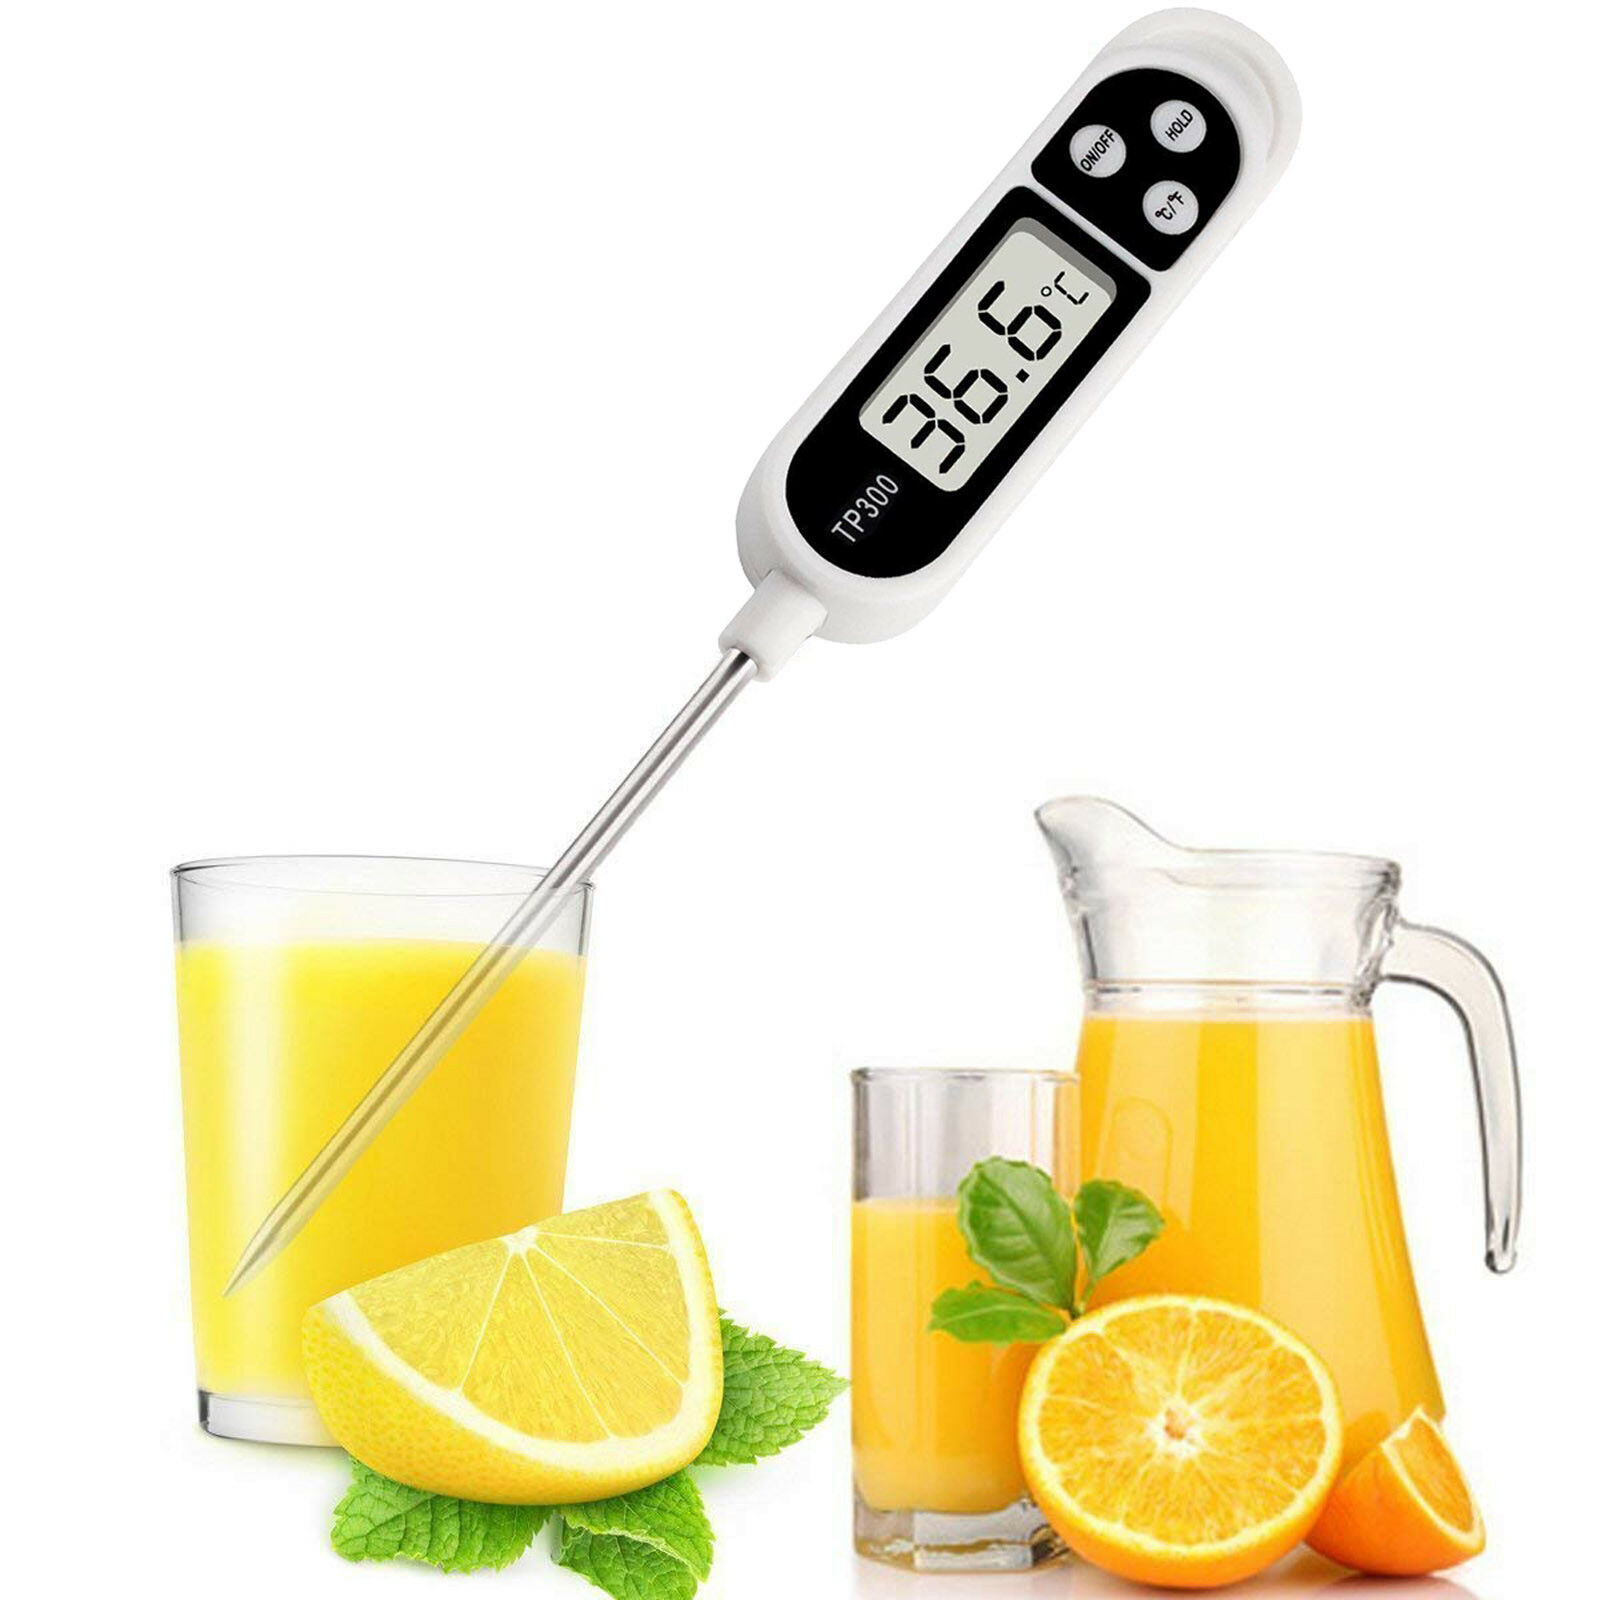 Cooking Food Thermometer Digital Instant Read Meat for Oil W